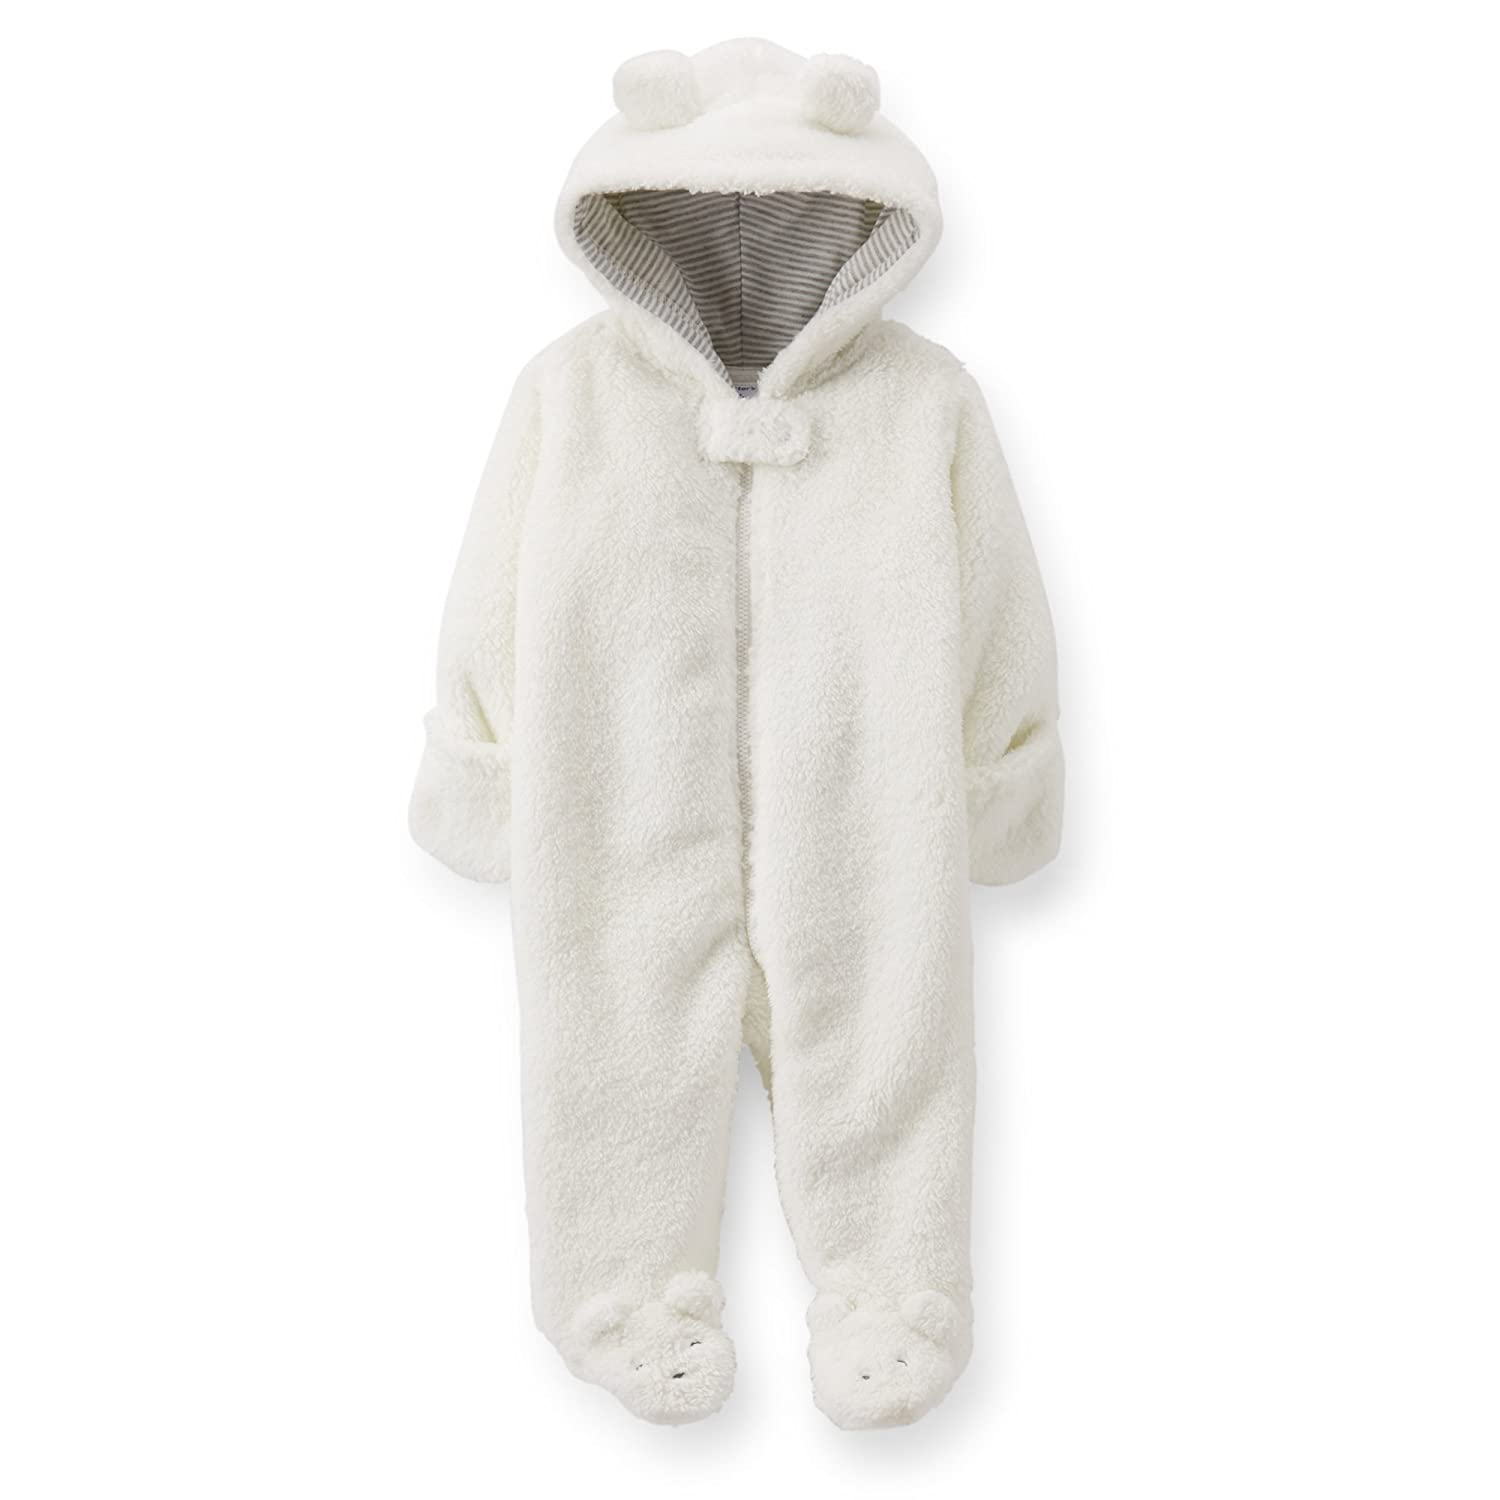 337a380034f1 Amazon.com   Carter s (Carter s)  romper coveralls Sherpa hooded ...